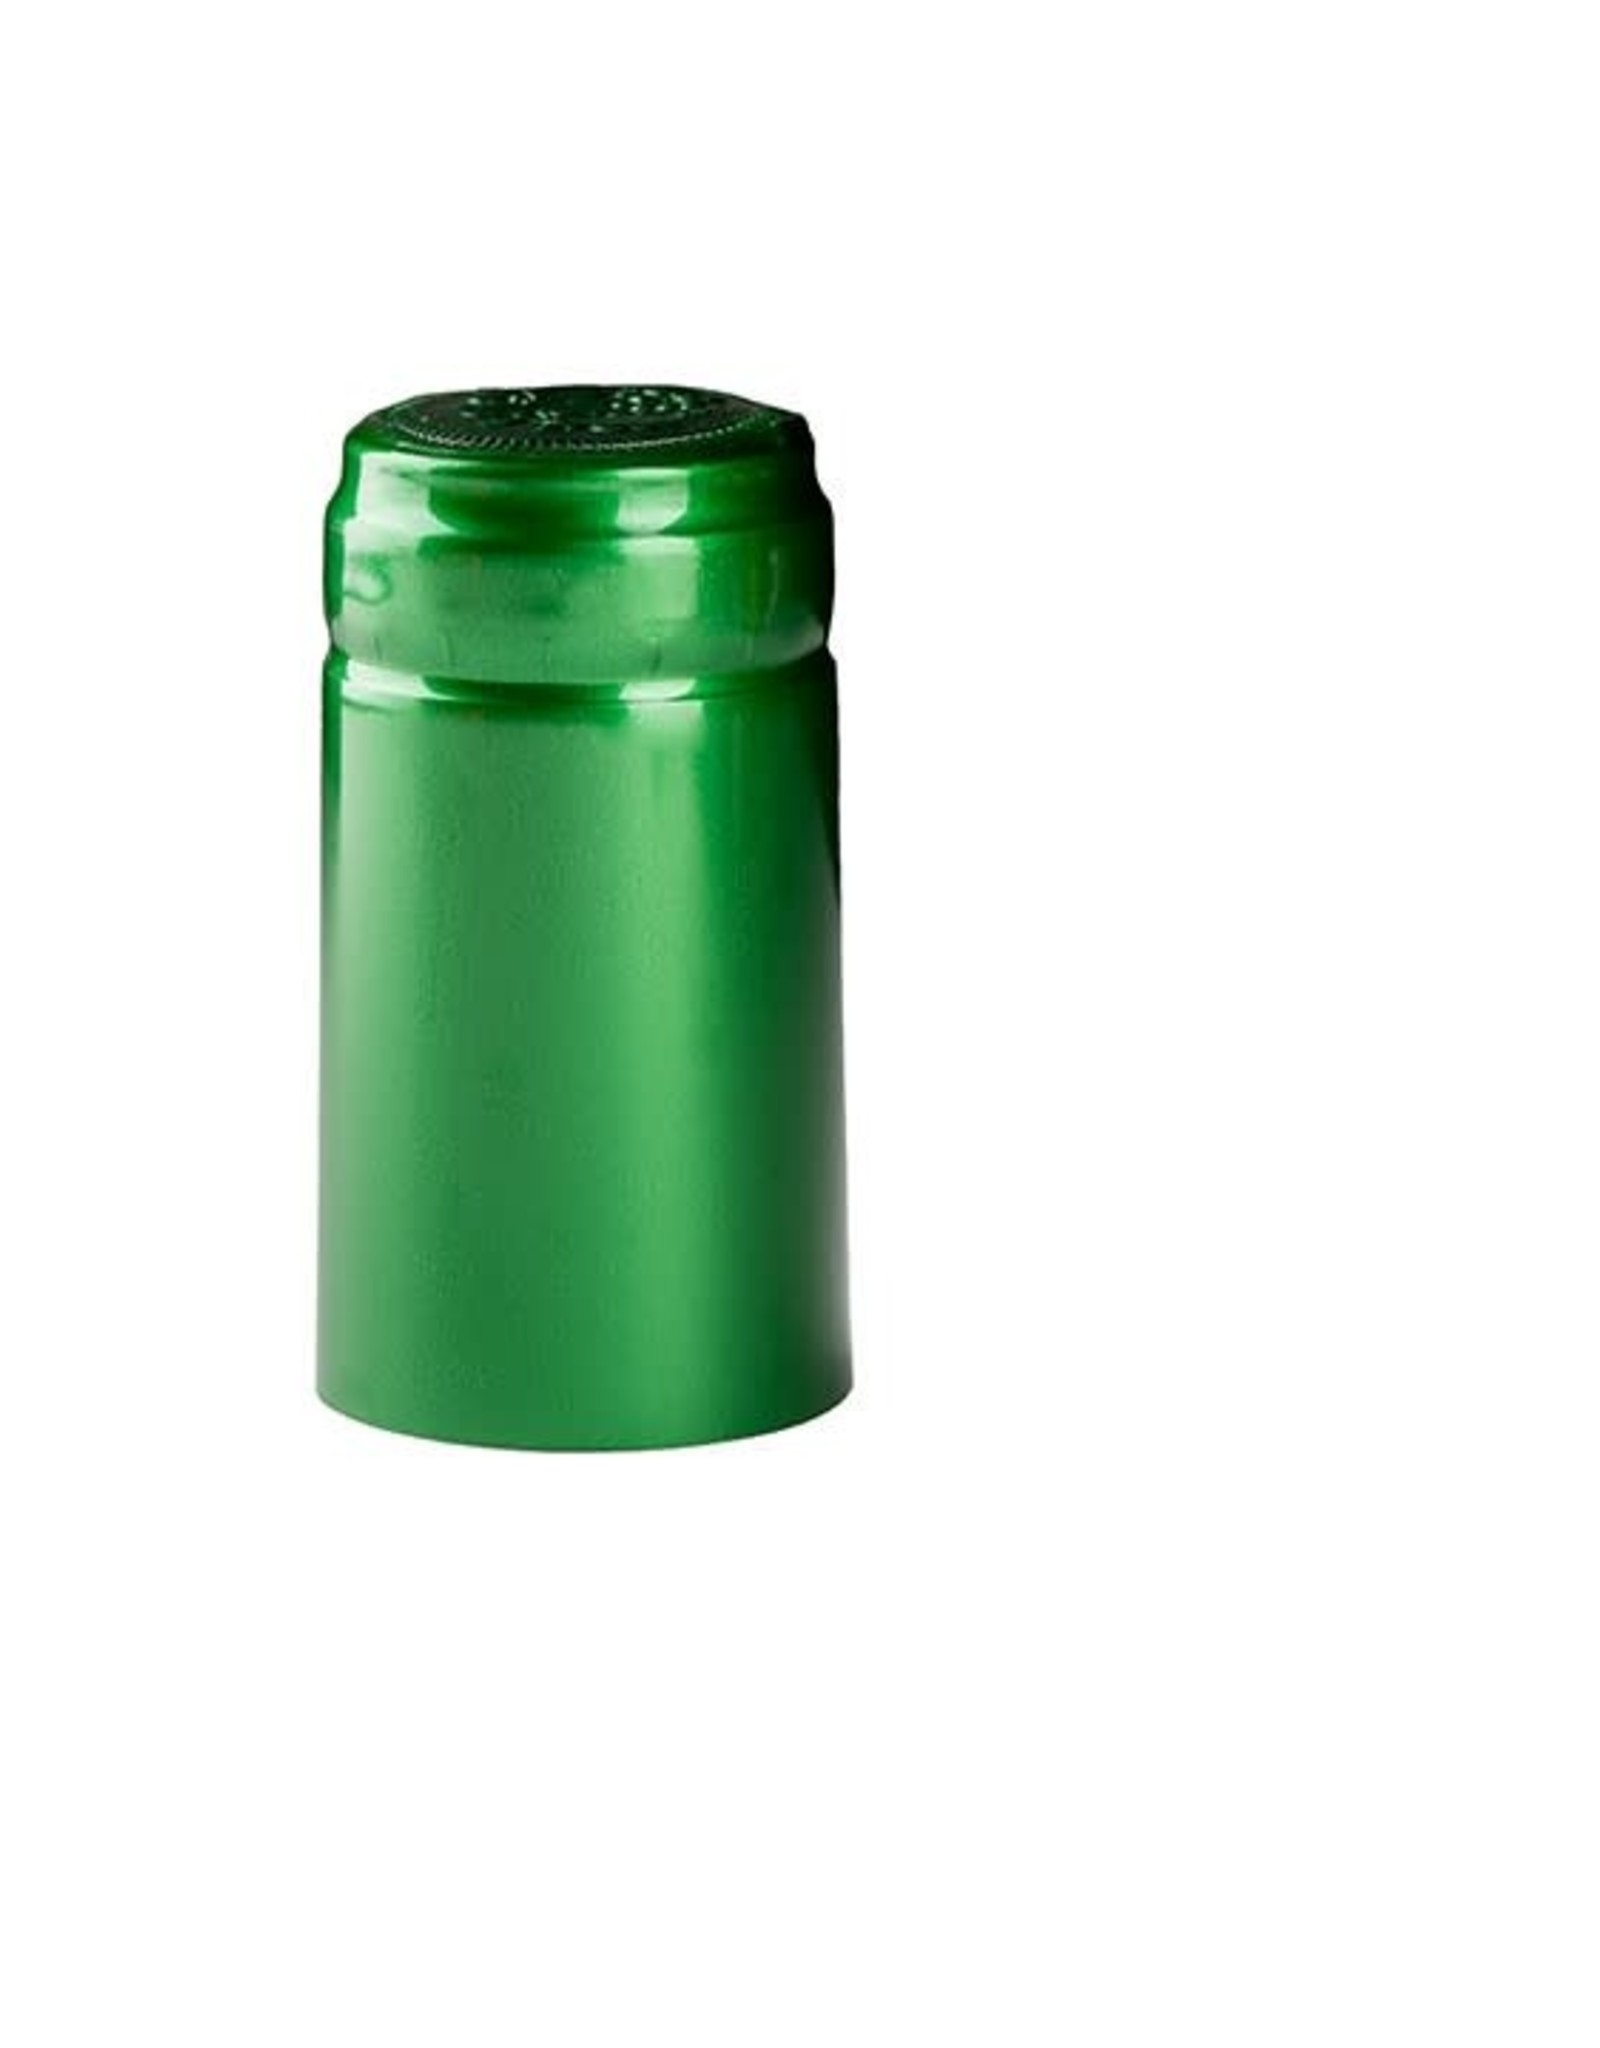 EMERALD GREEN PVC SHRINK CAPSULES 30 COUNT